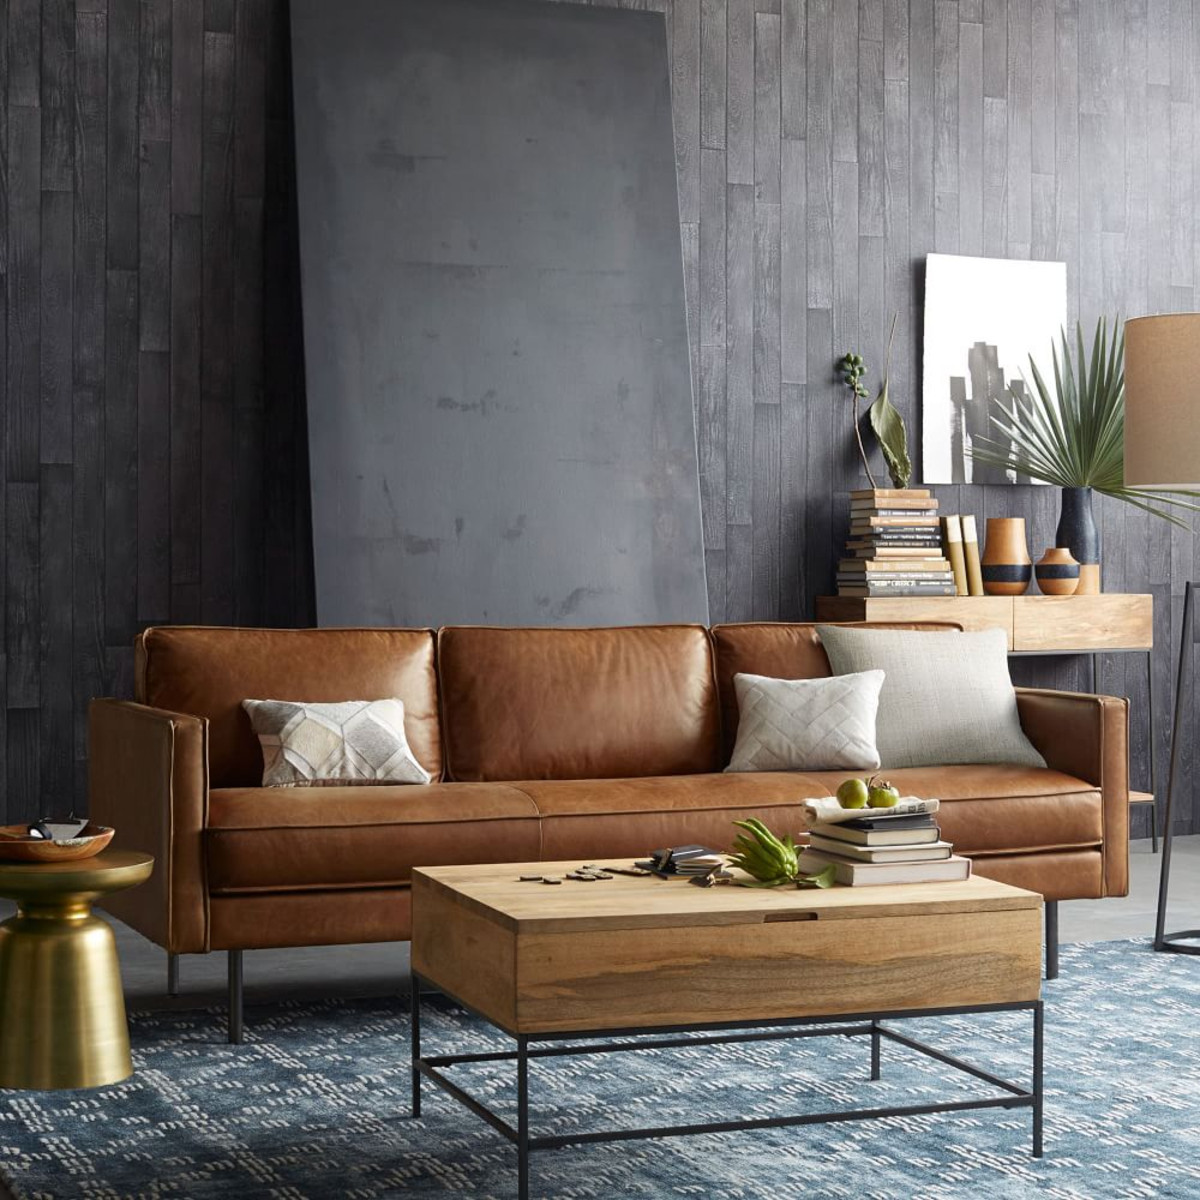 west elm hamilton leather sofa tan length cm a message to straight men it 39s cool like interior